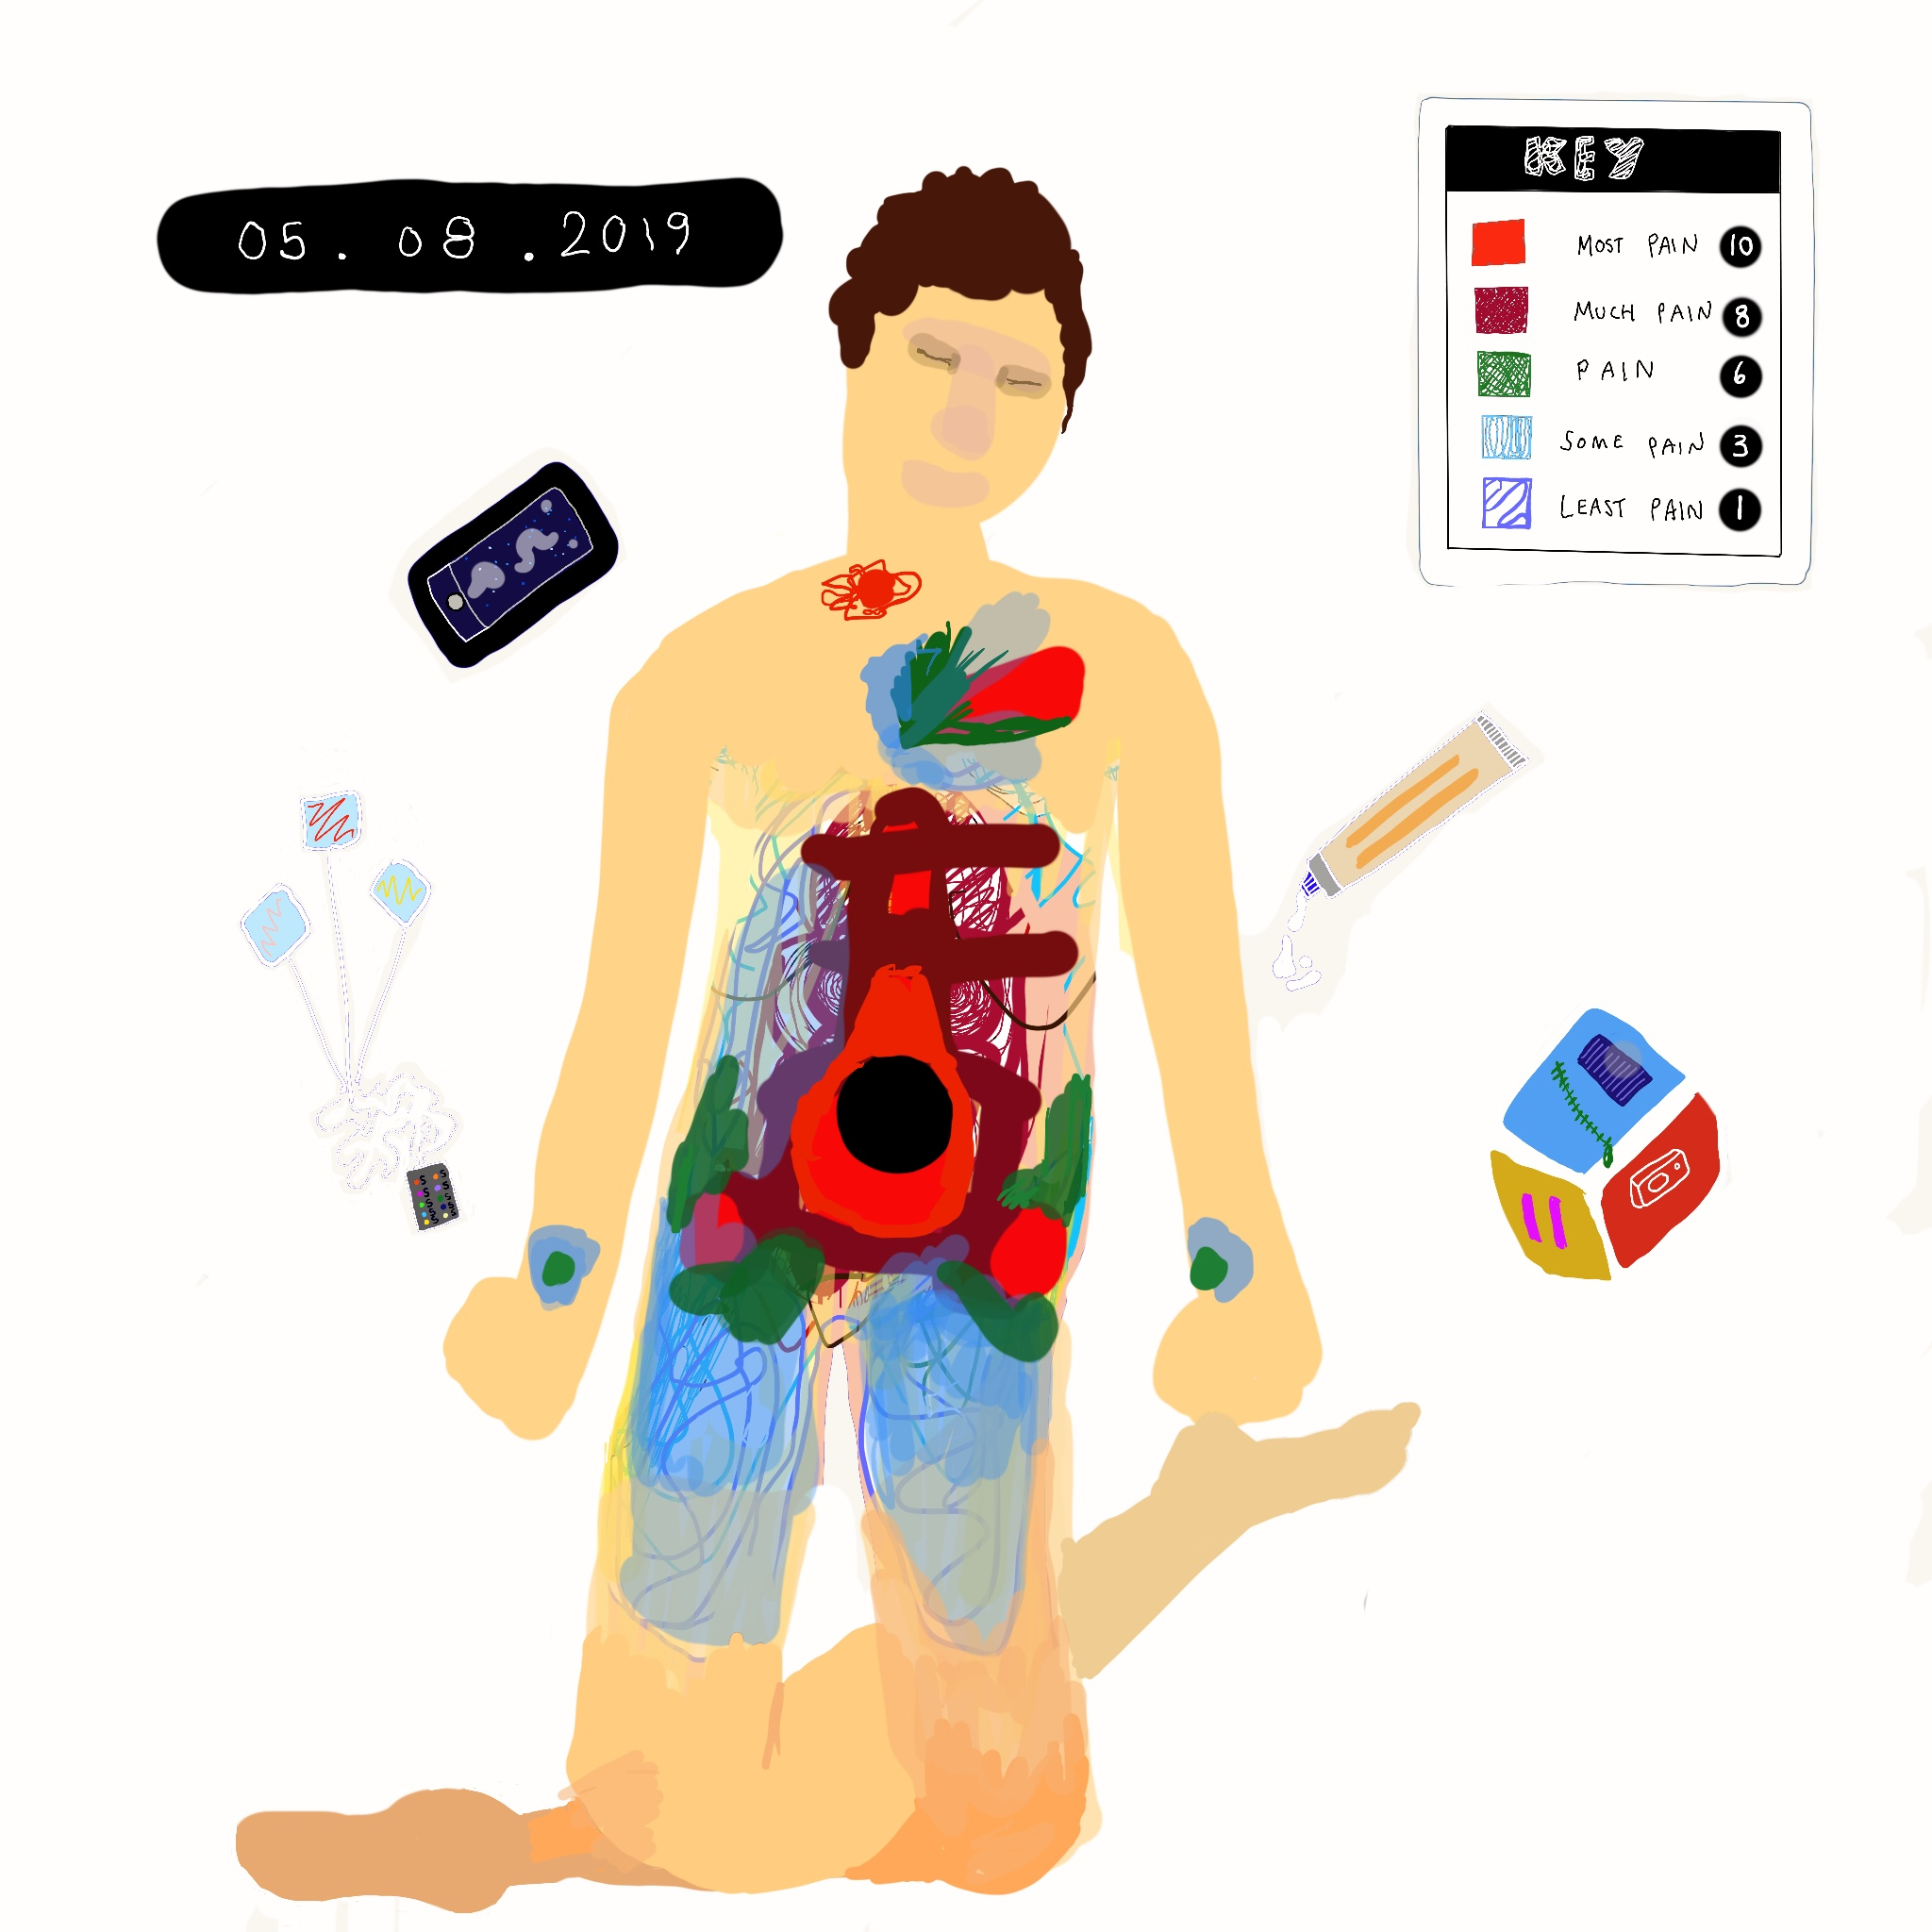 A digital painting of Touretteshero showing a colour-coded map of pain on Touretteshero's body. In top corner of the image, a key showing the intensity of the pain on a scale of 1 to 10 corresponding to a colour. Helpful objects surround her eg. phone, alarm and pain relief cream. The date is on the top left corner of the image 05.08.2019. Pain is shown around the body but less so in the chest than in the other images.